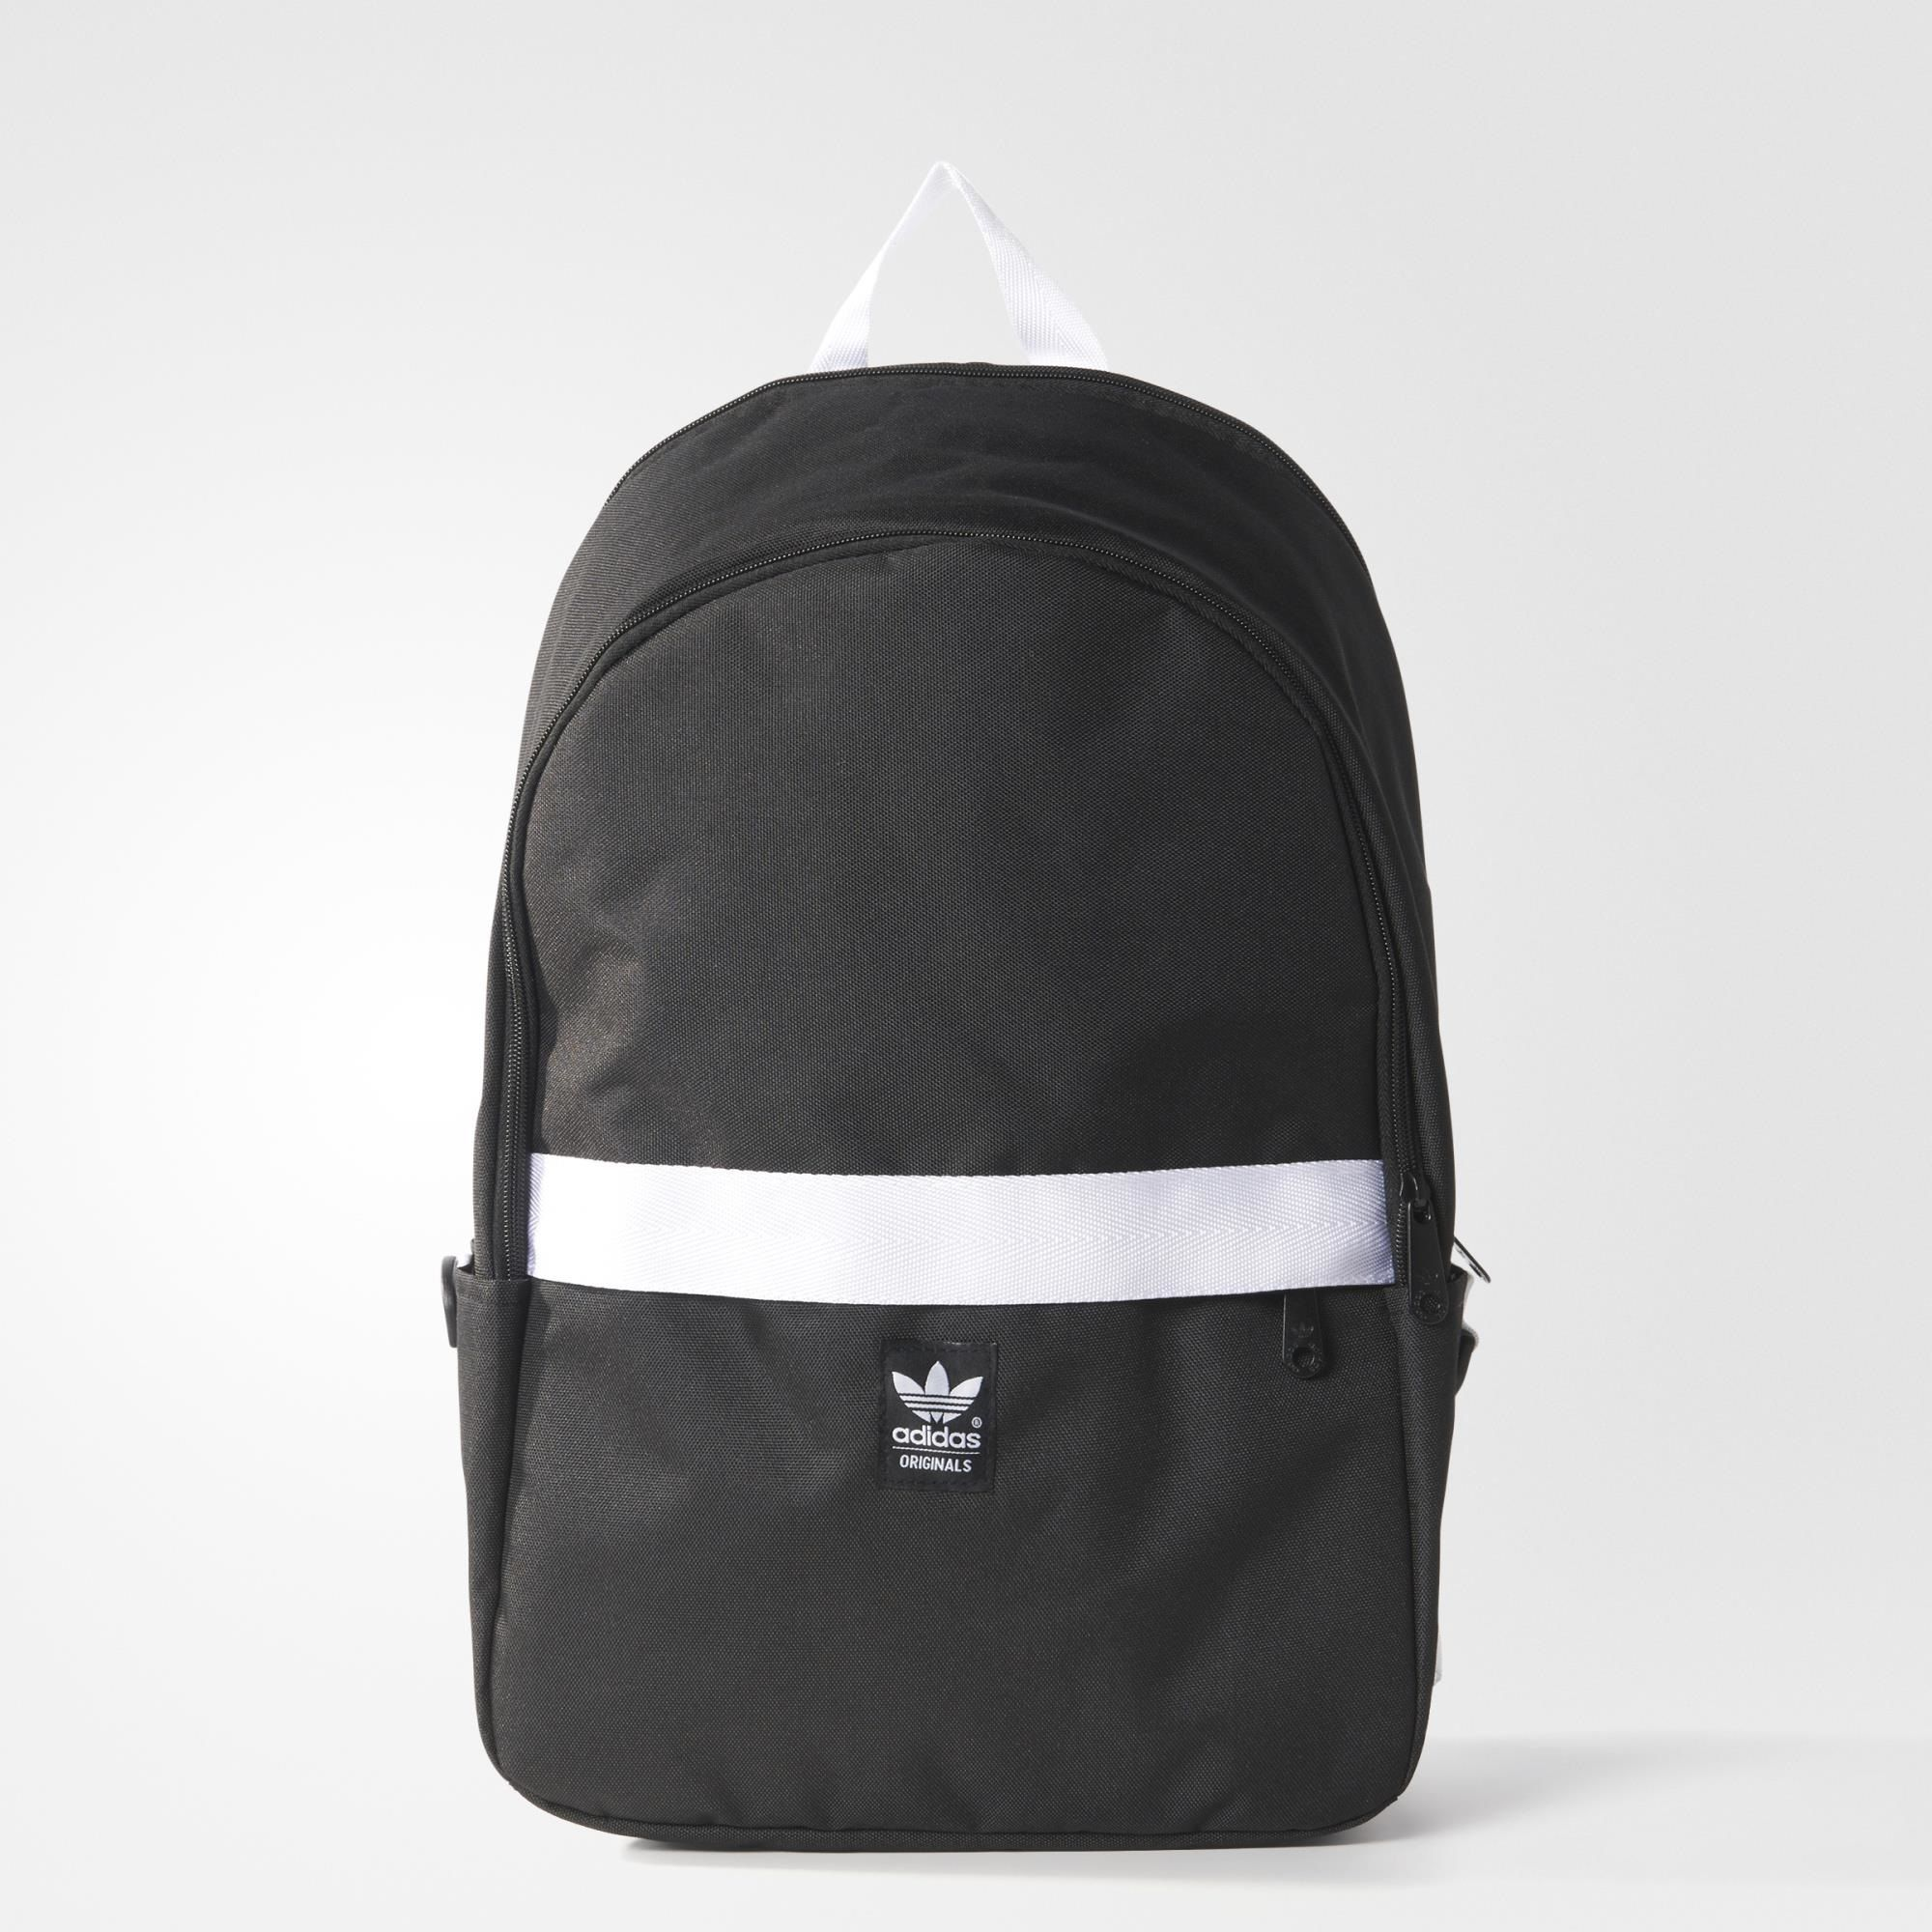 d7250afb8 adidas Essential Backpack - Black | adidas US | bags | Adidas ...